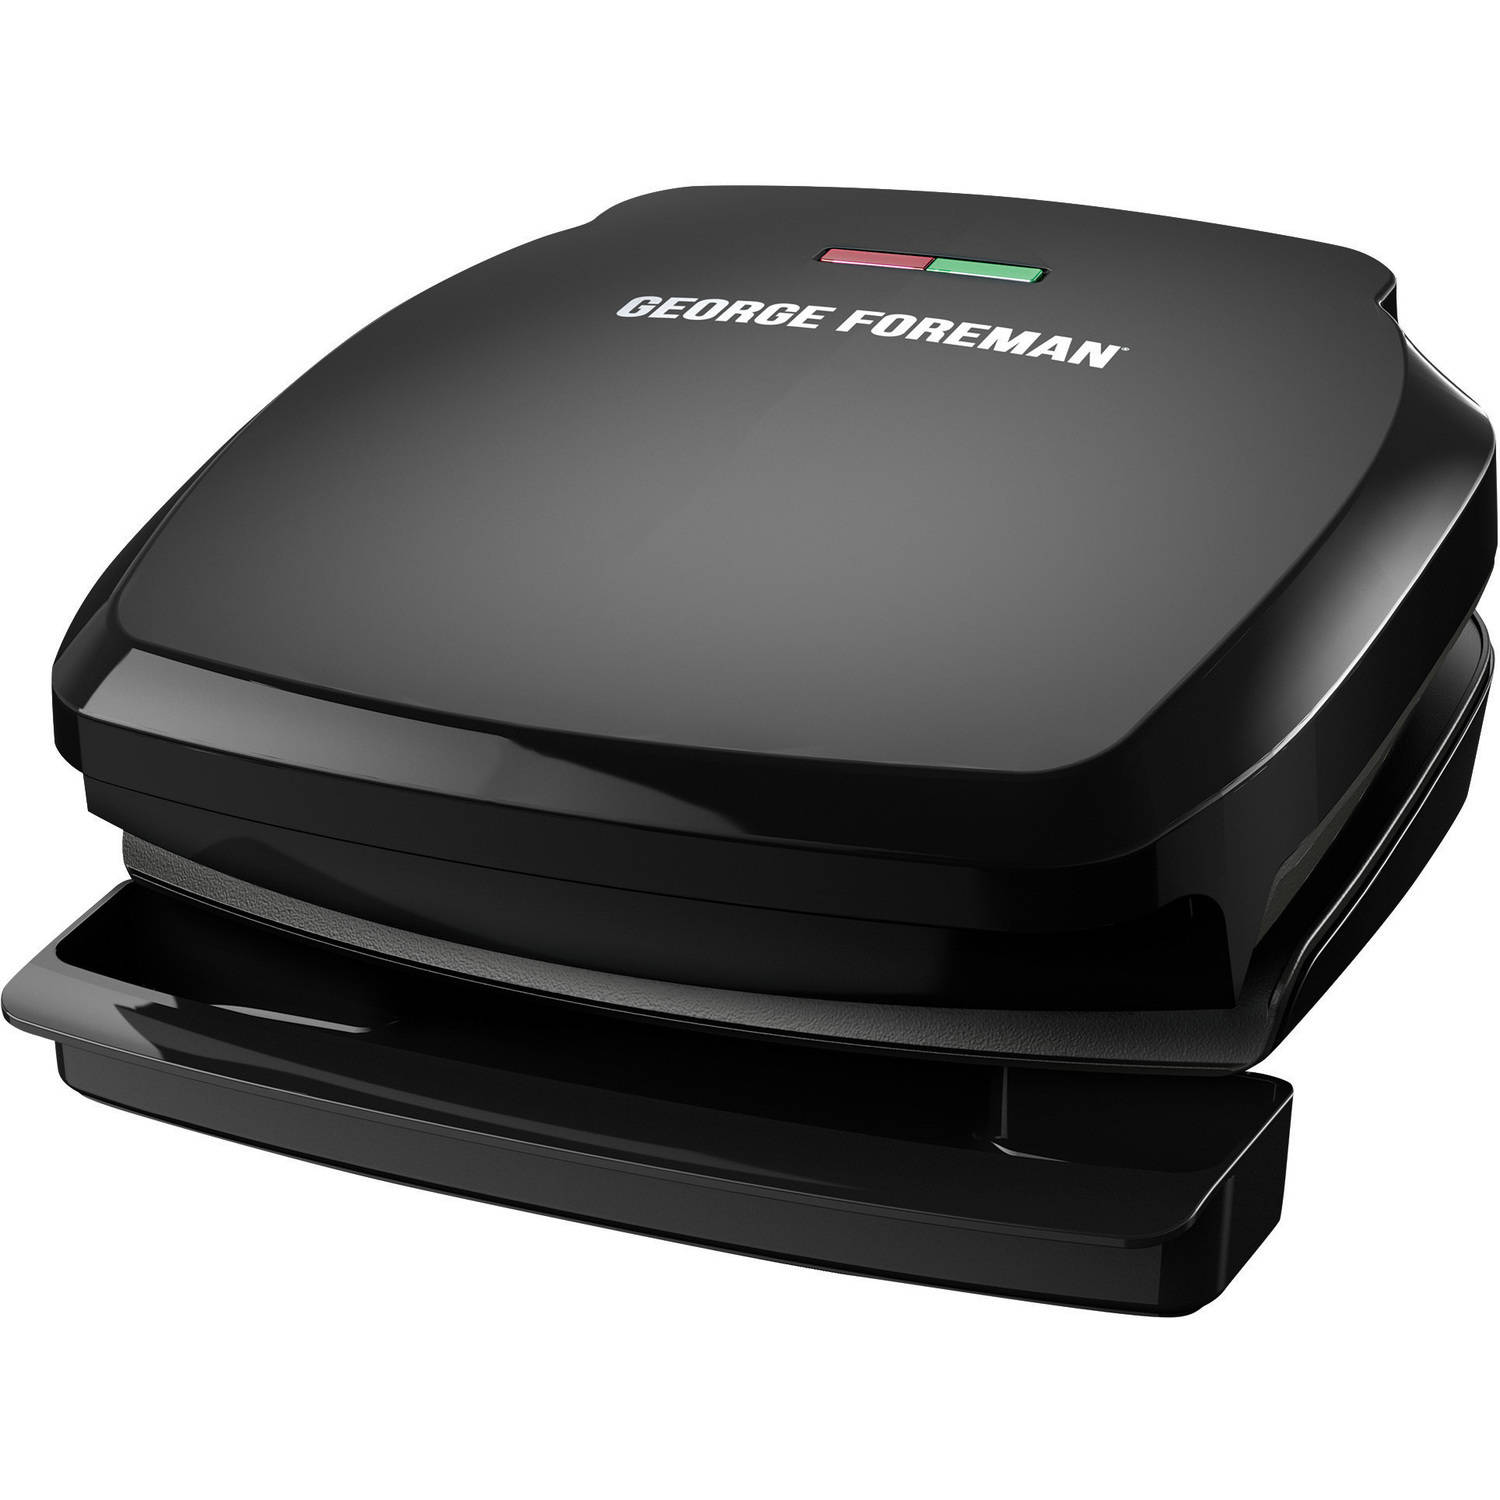 George Foreman Classic 2-Serving Fixed Plate Grill